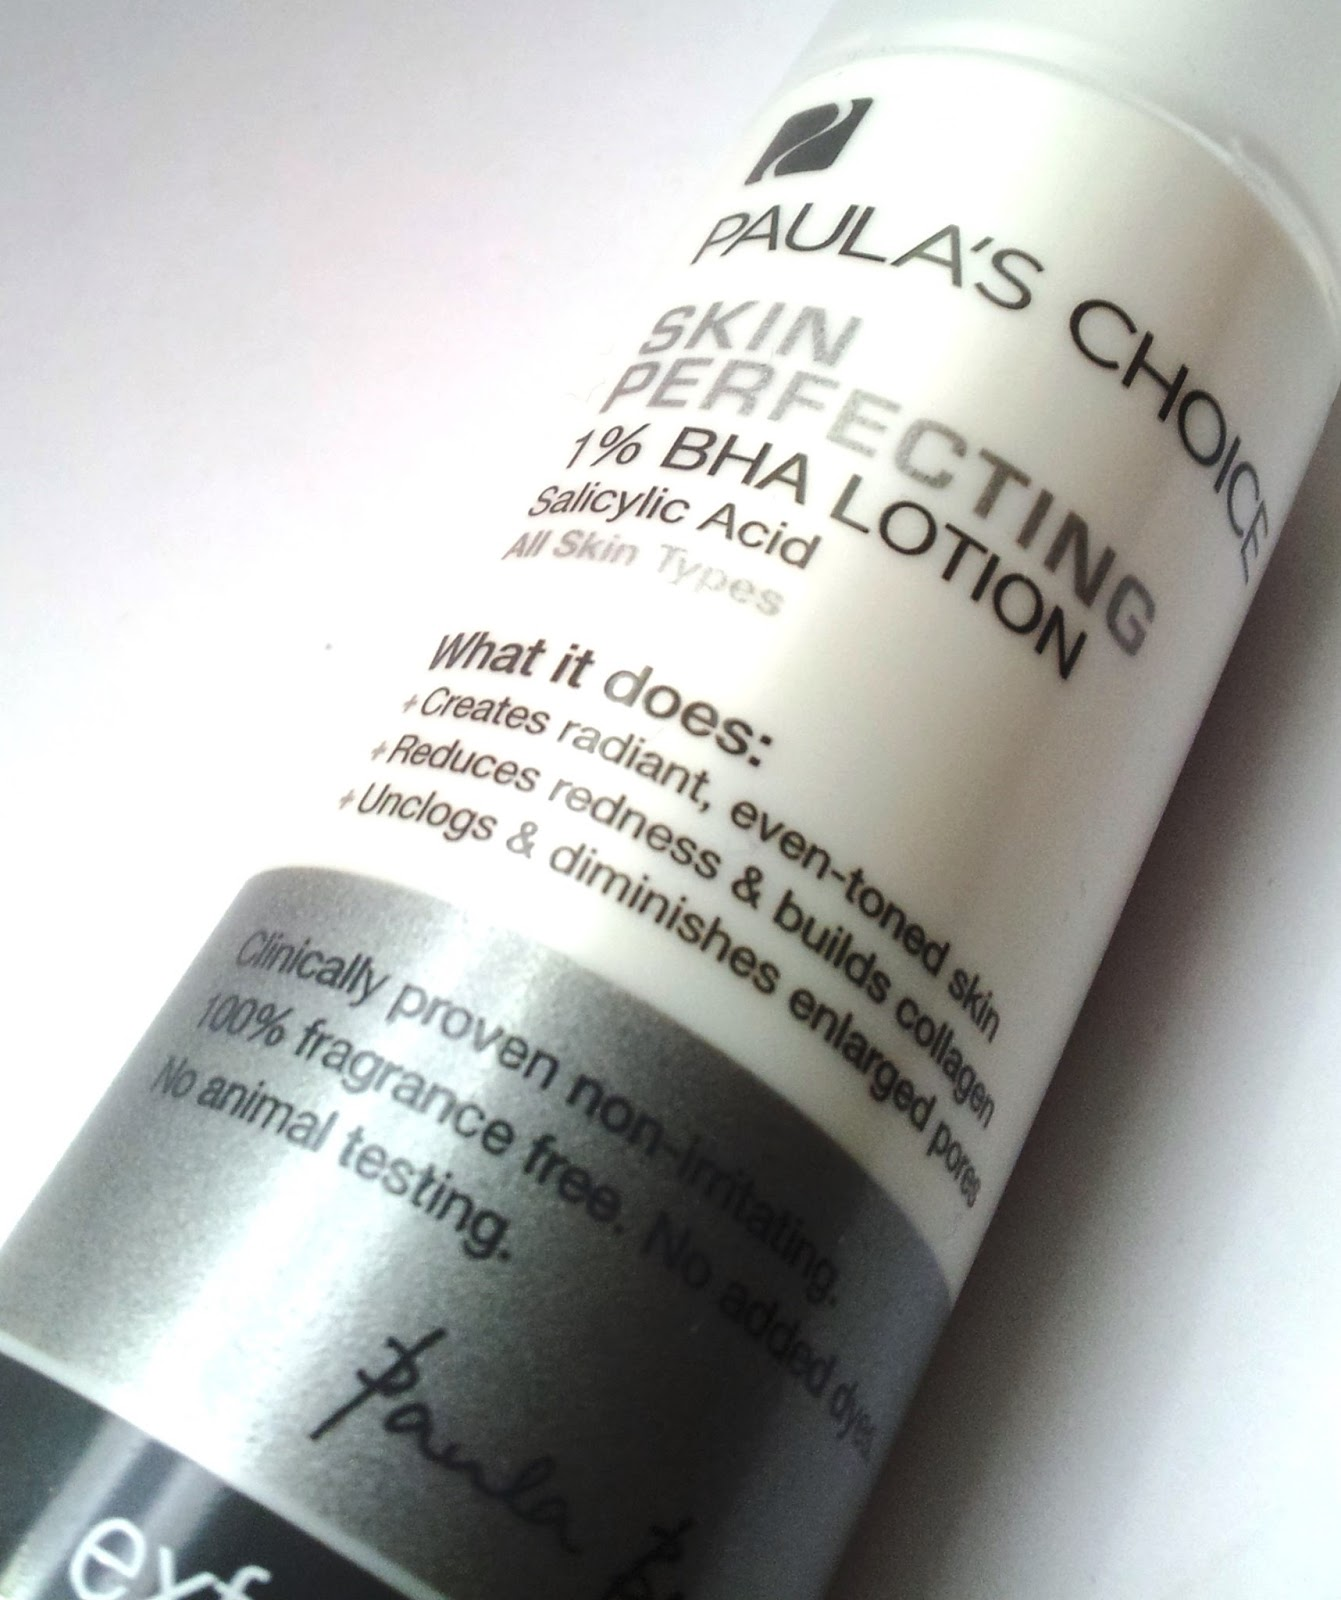 Paula's Choice: Skin perfecting 1% BHA Lotion